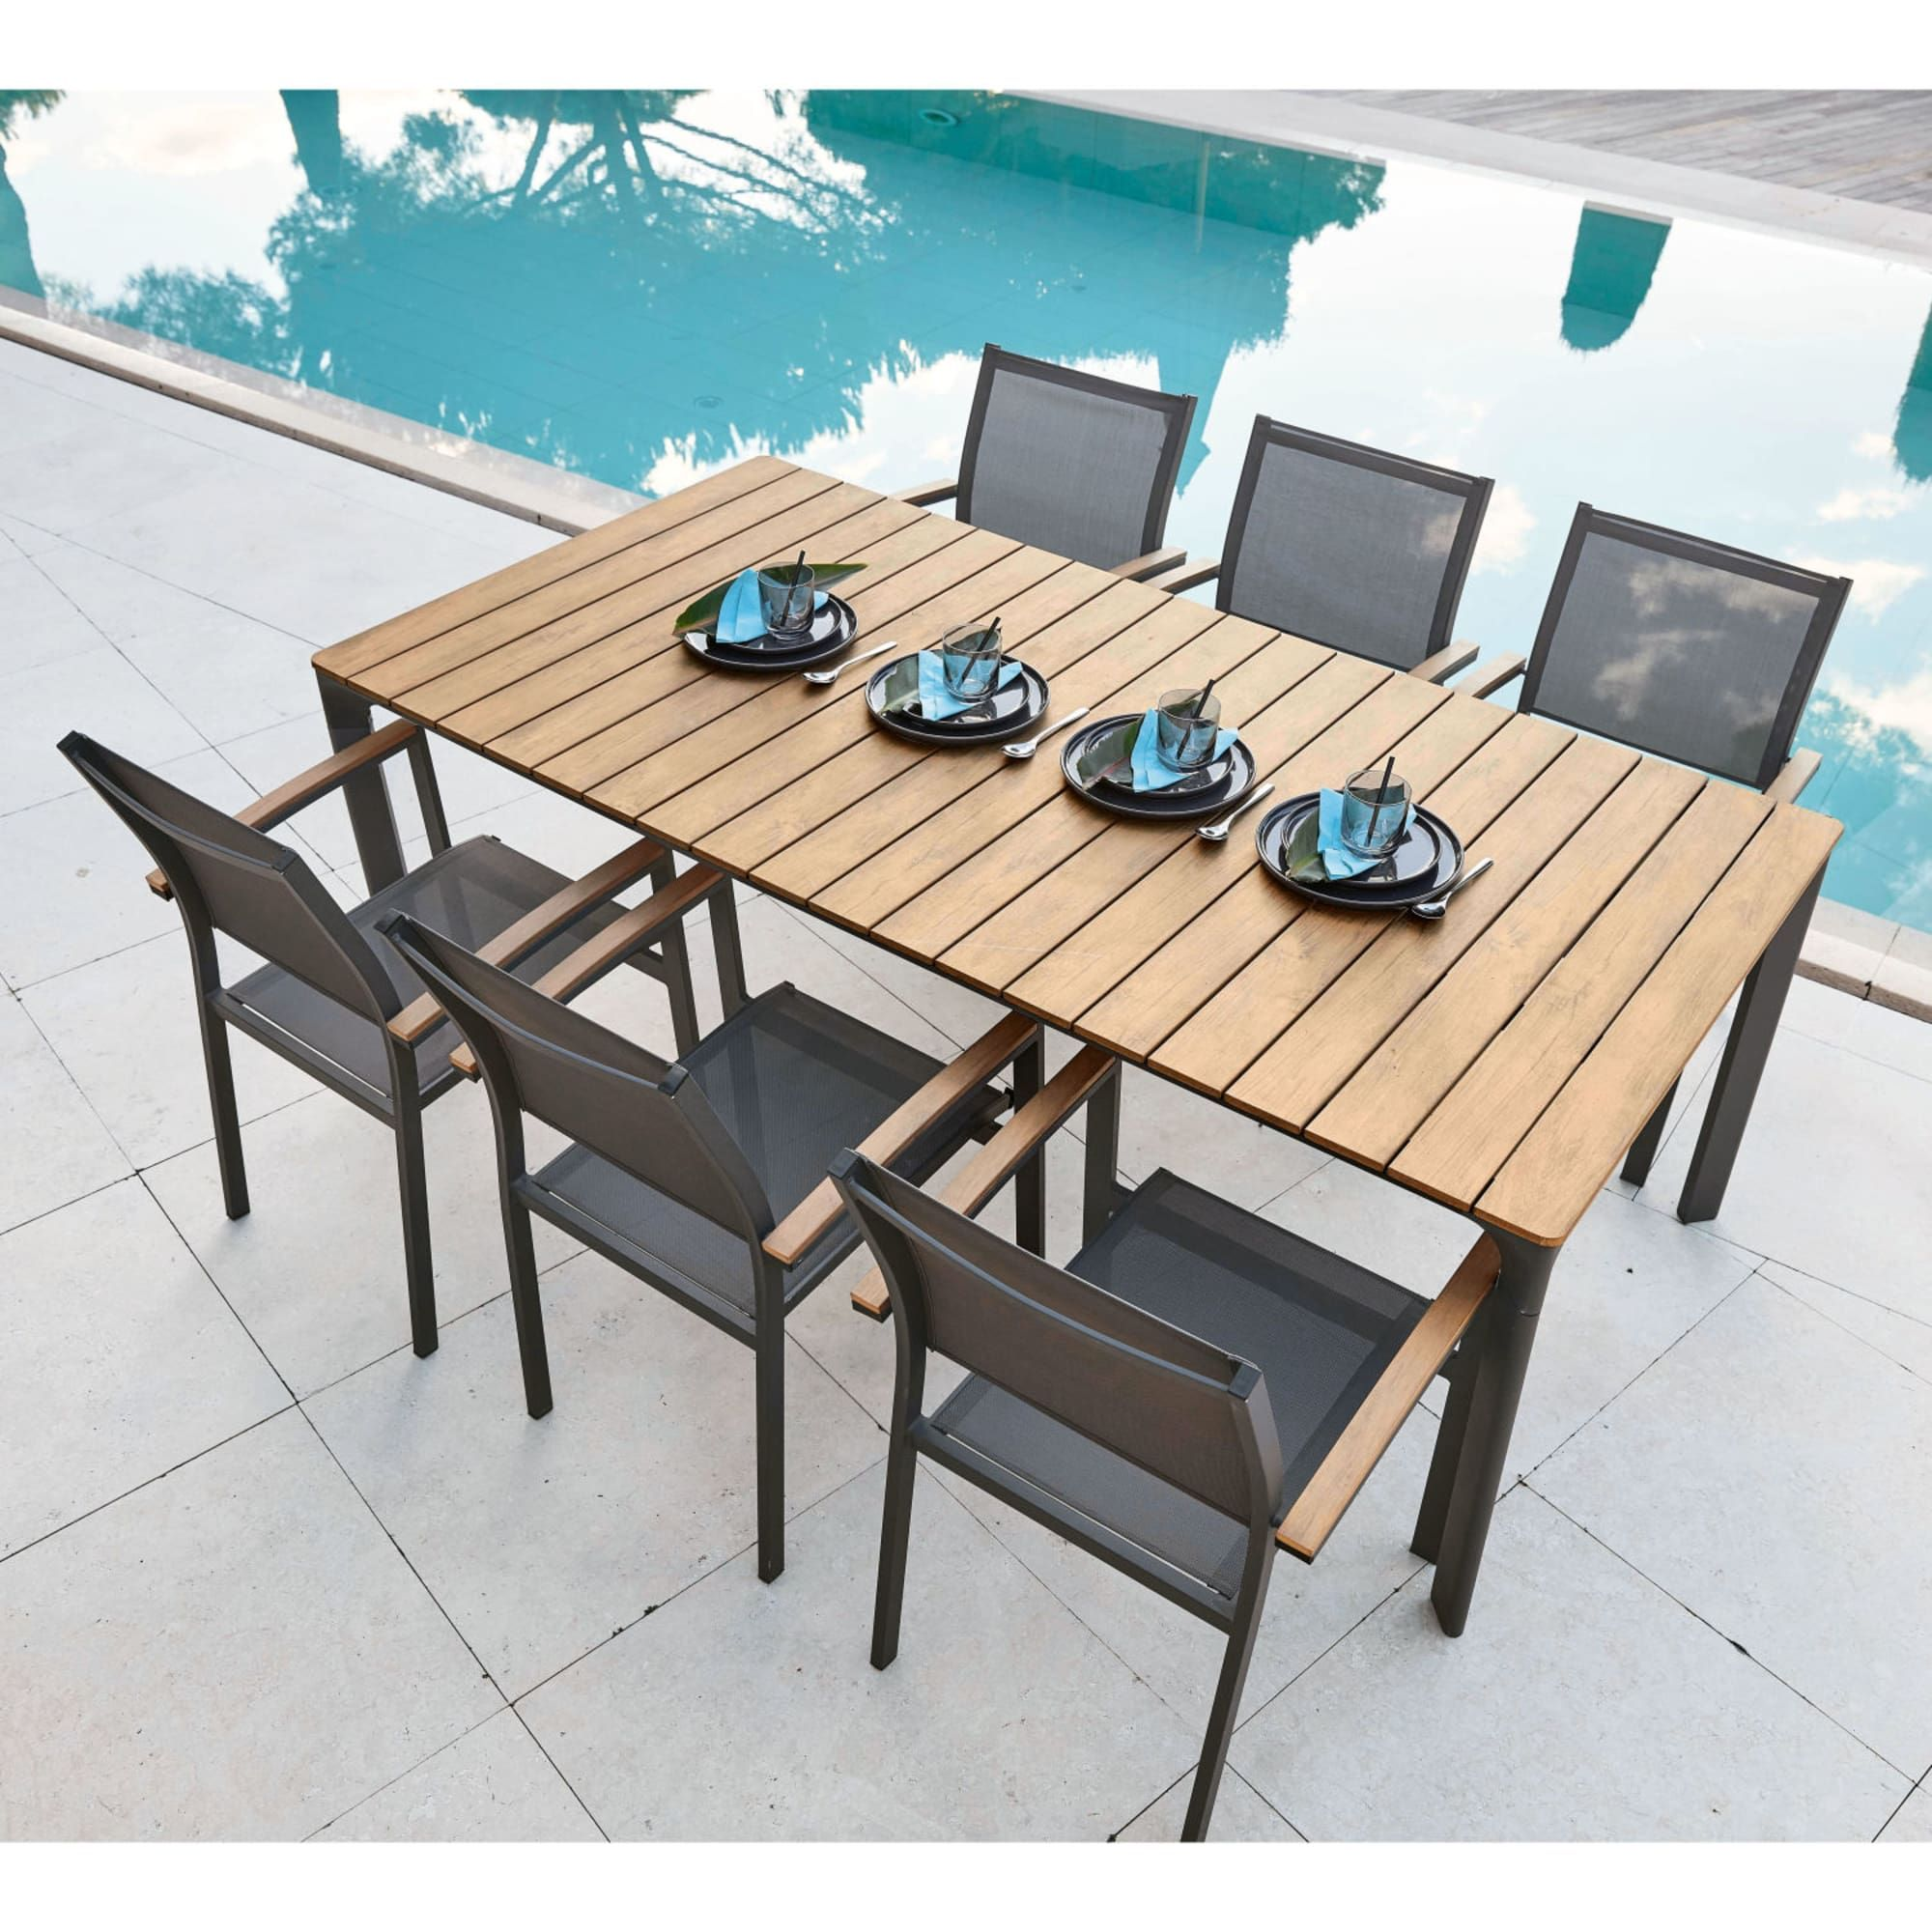 6 8 Seater Aluminium And Composite Garden Table L200 Furniture